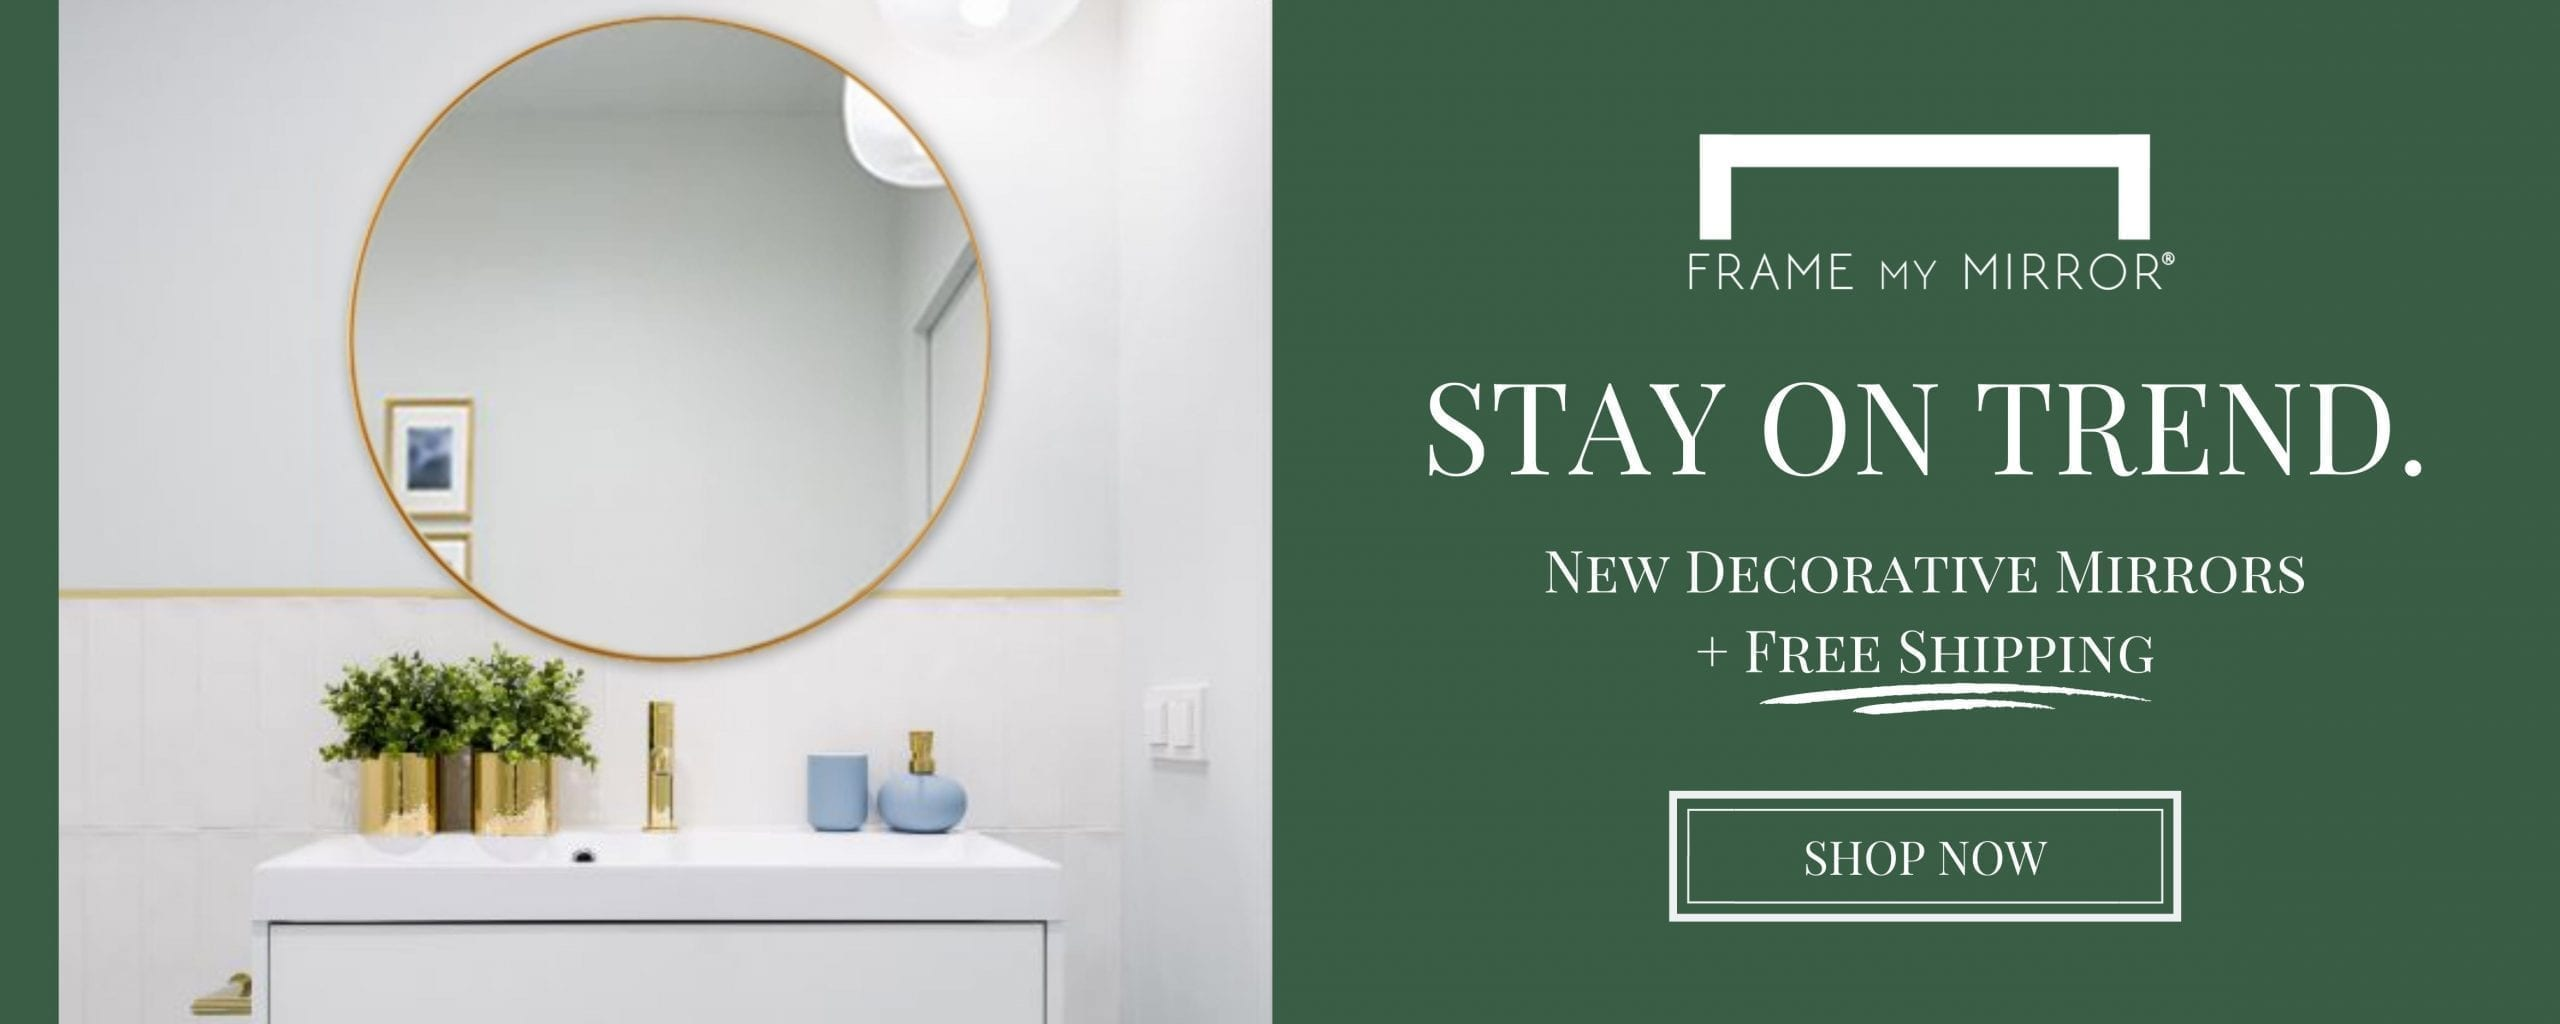 evergreen-homepage-banner-specialty-mirrors-4-scaled